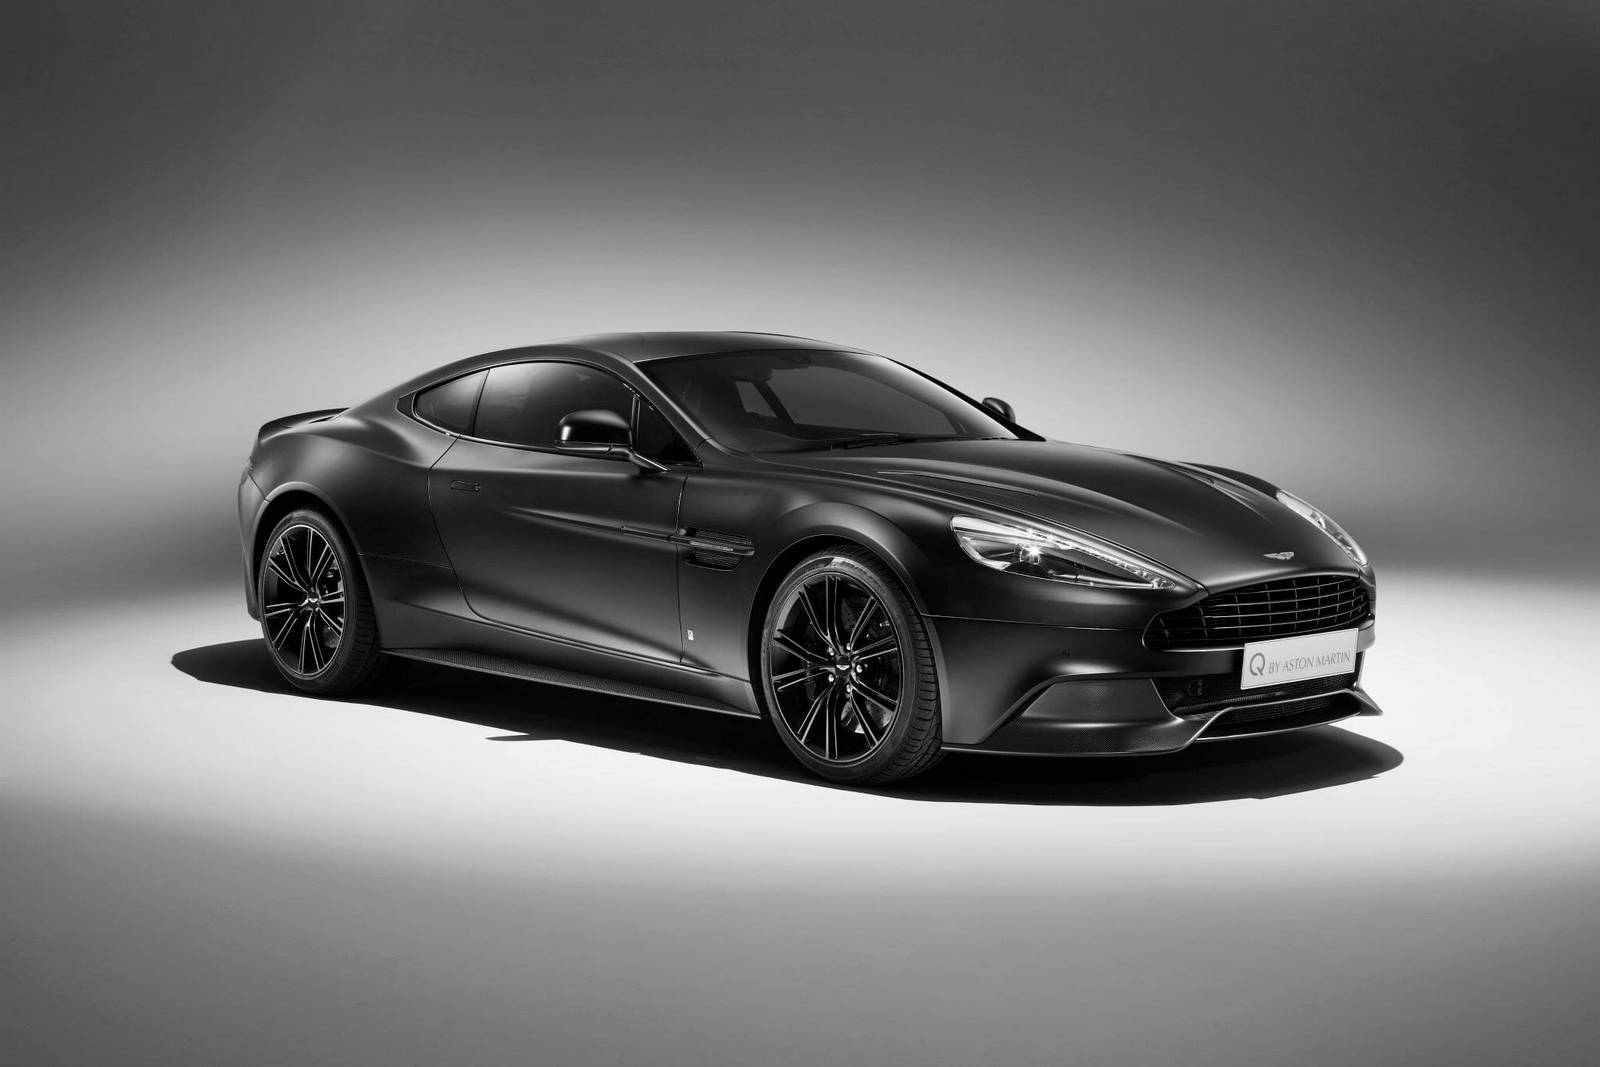 Q By Aston Martin Reveals New Jet Black Vanquish Coupe